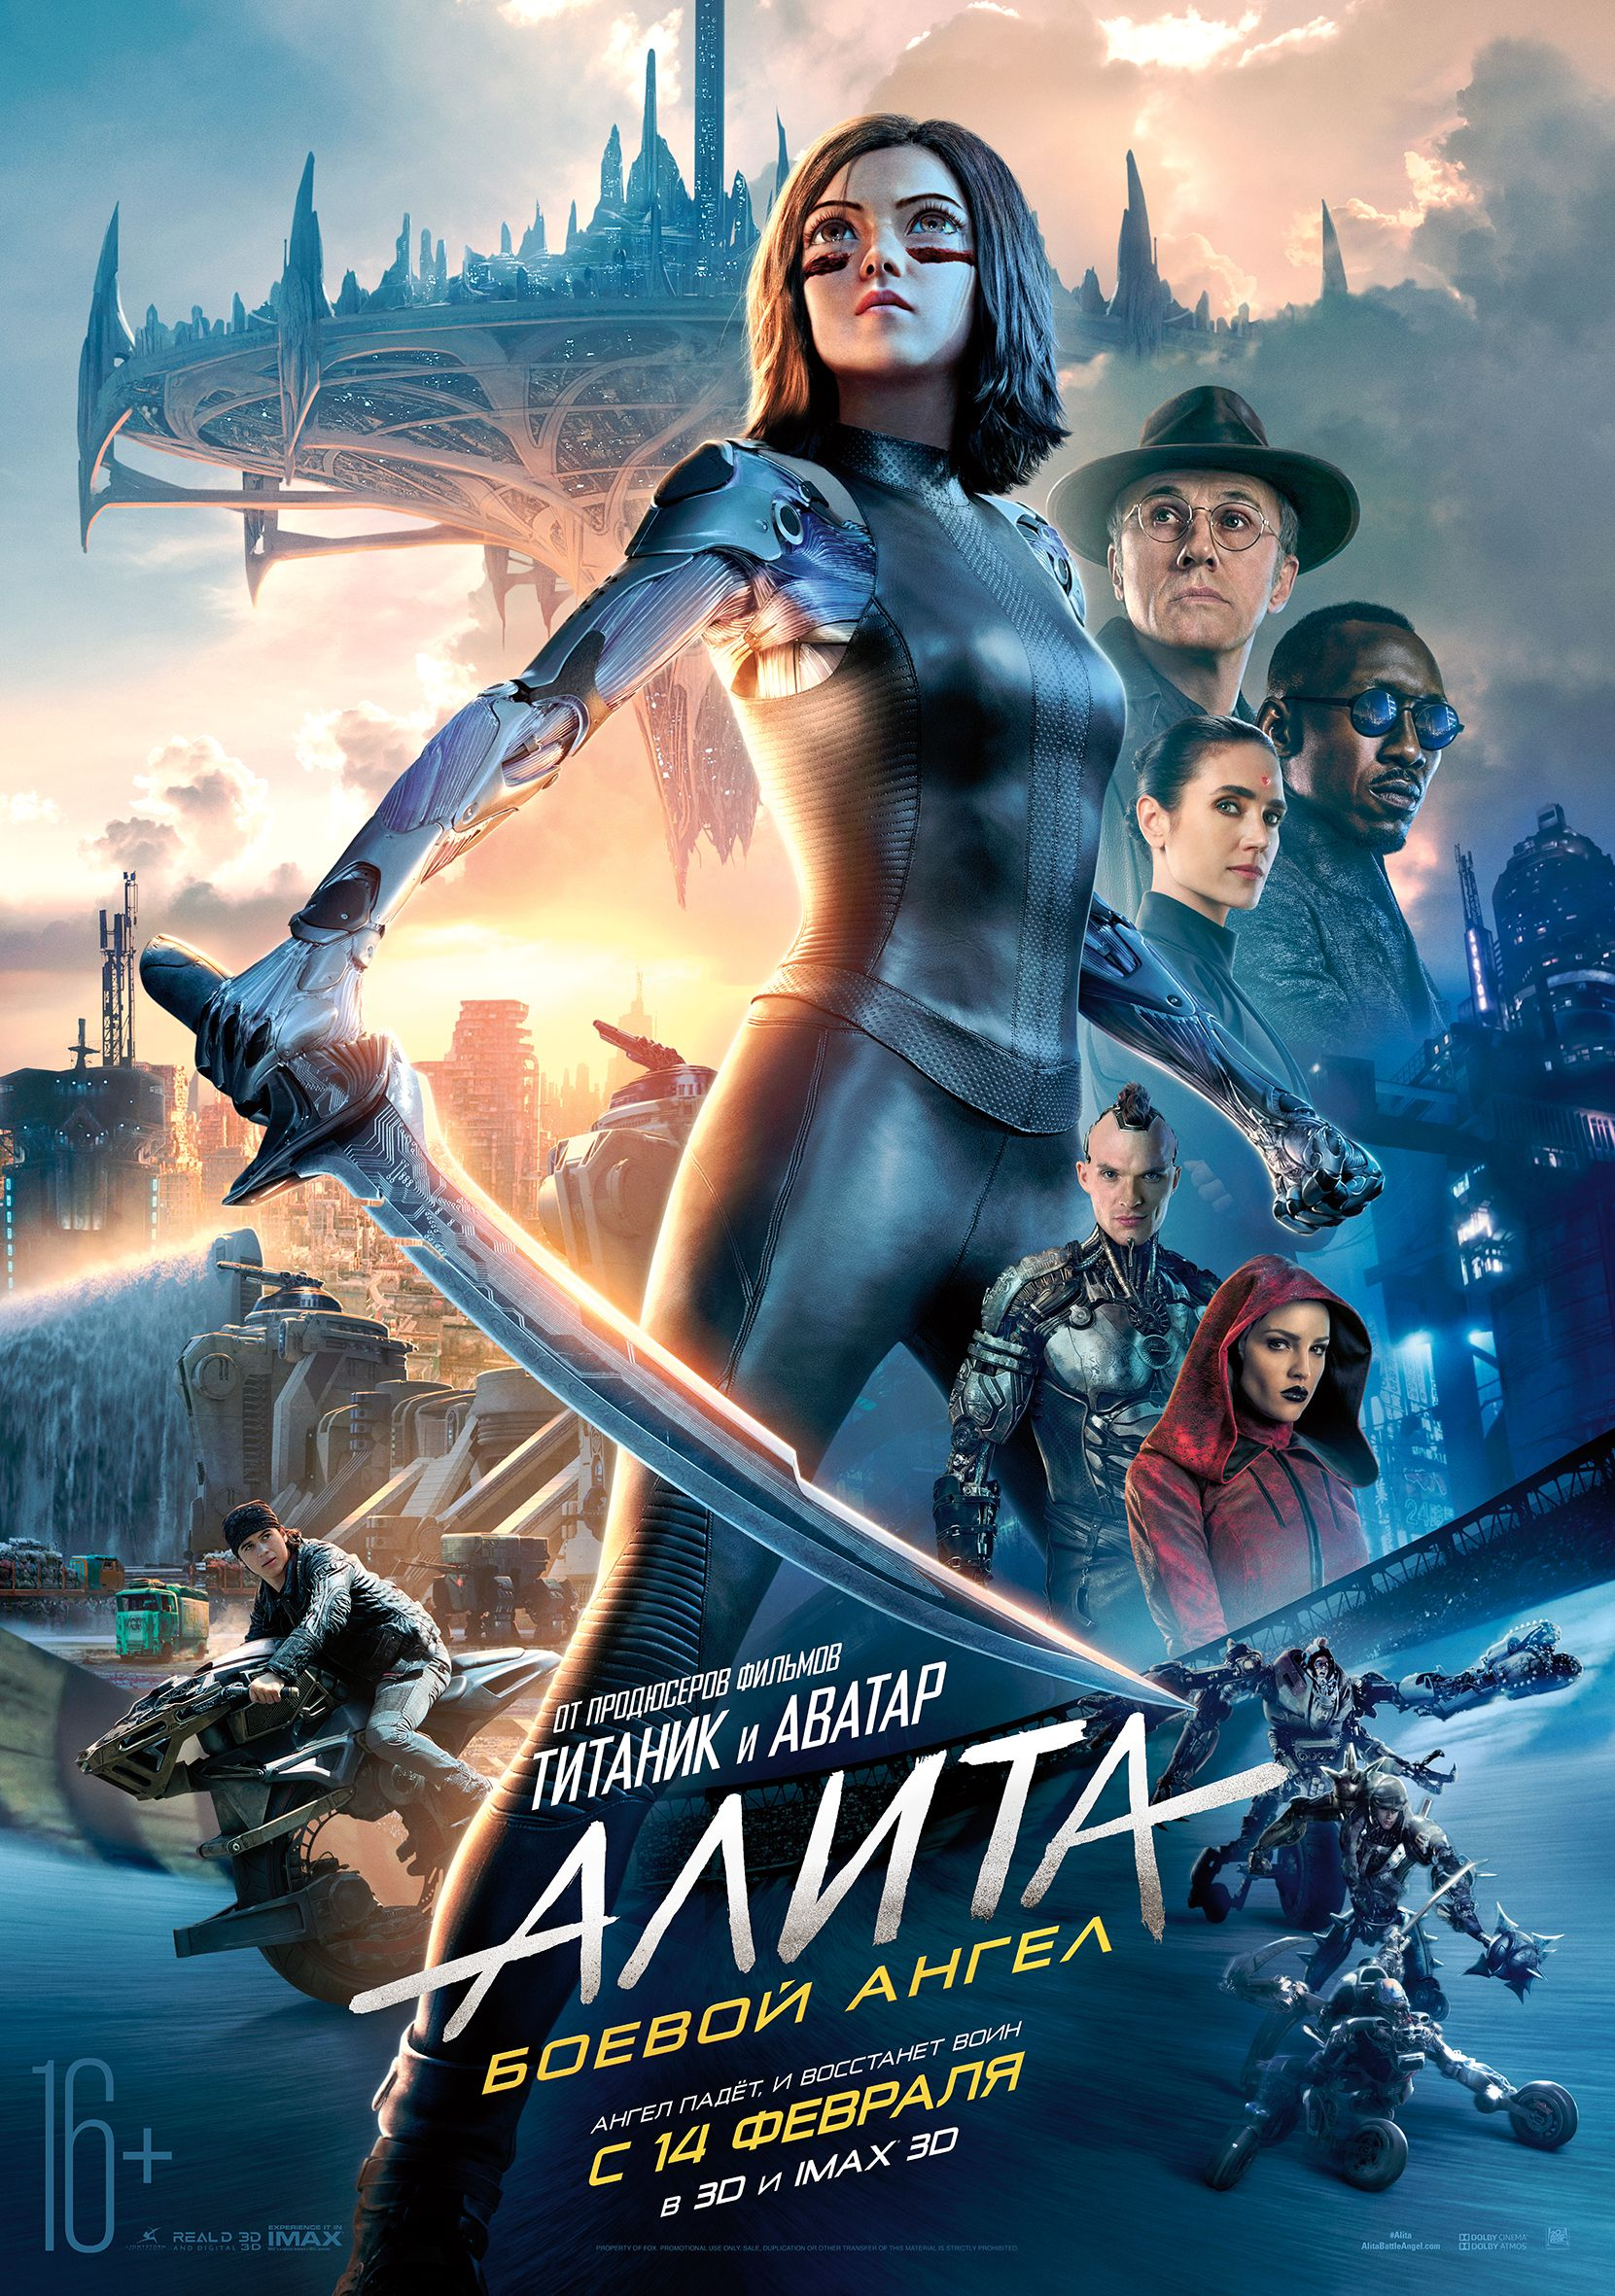 http://horrorzone.ru/uploads/_gallery/74275/alita-battle-angel-04.jpg